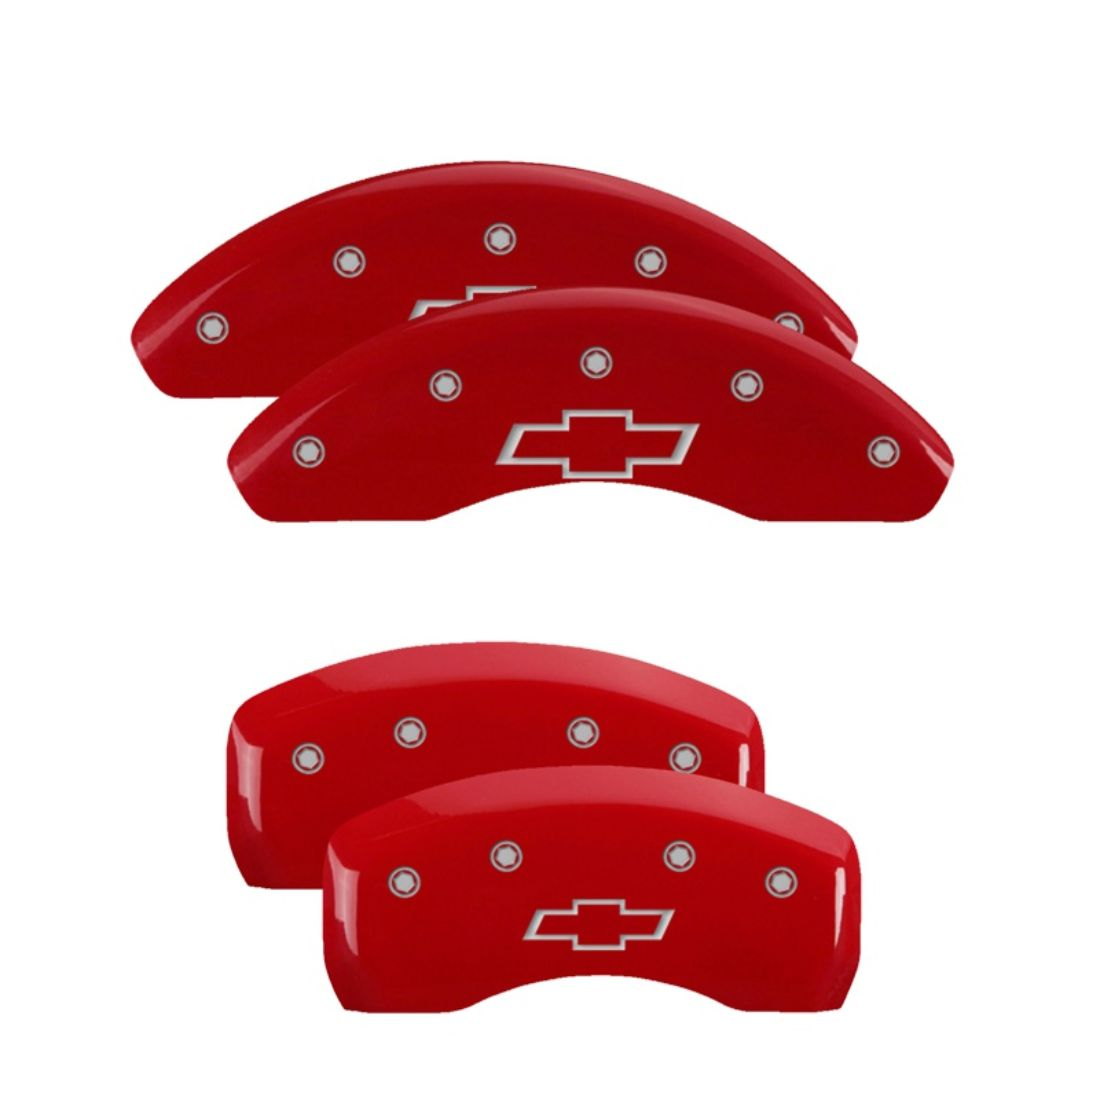 MGP Caliper Brake Covers For Chevy 00-05 Impala Red Paint 14050SBOWRD